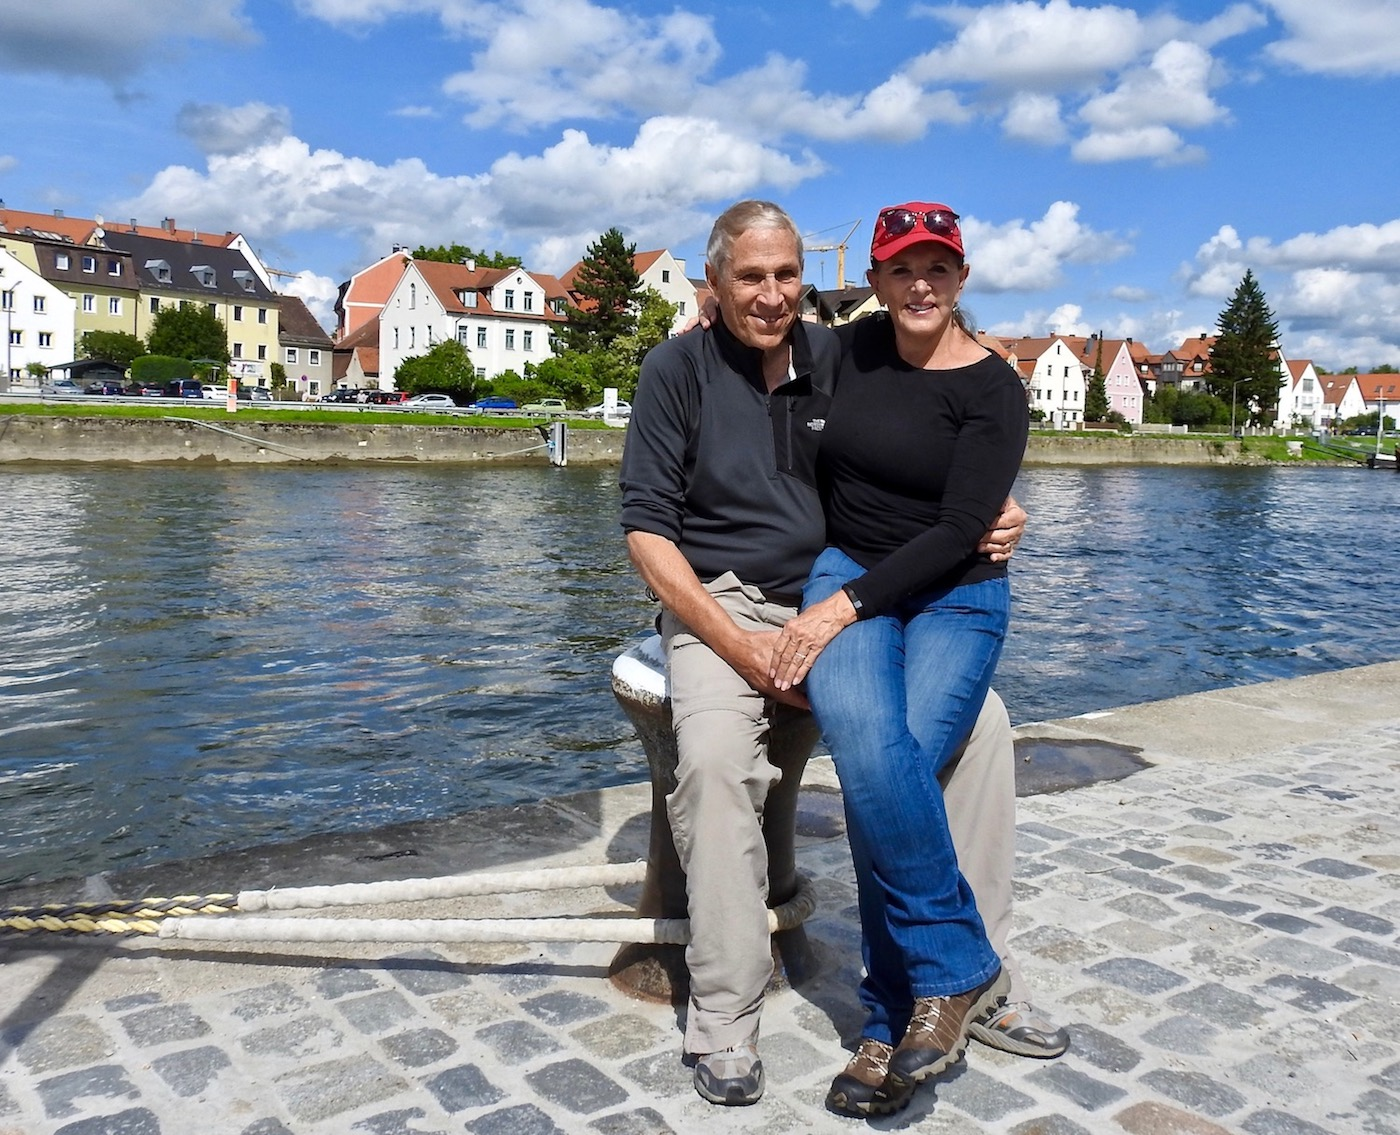 Annie and Bruce in front of Bavarian houses in Regensburg. The Danube flows in the background.